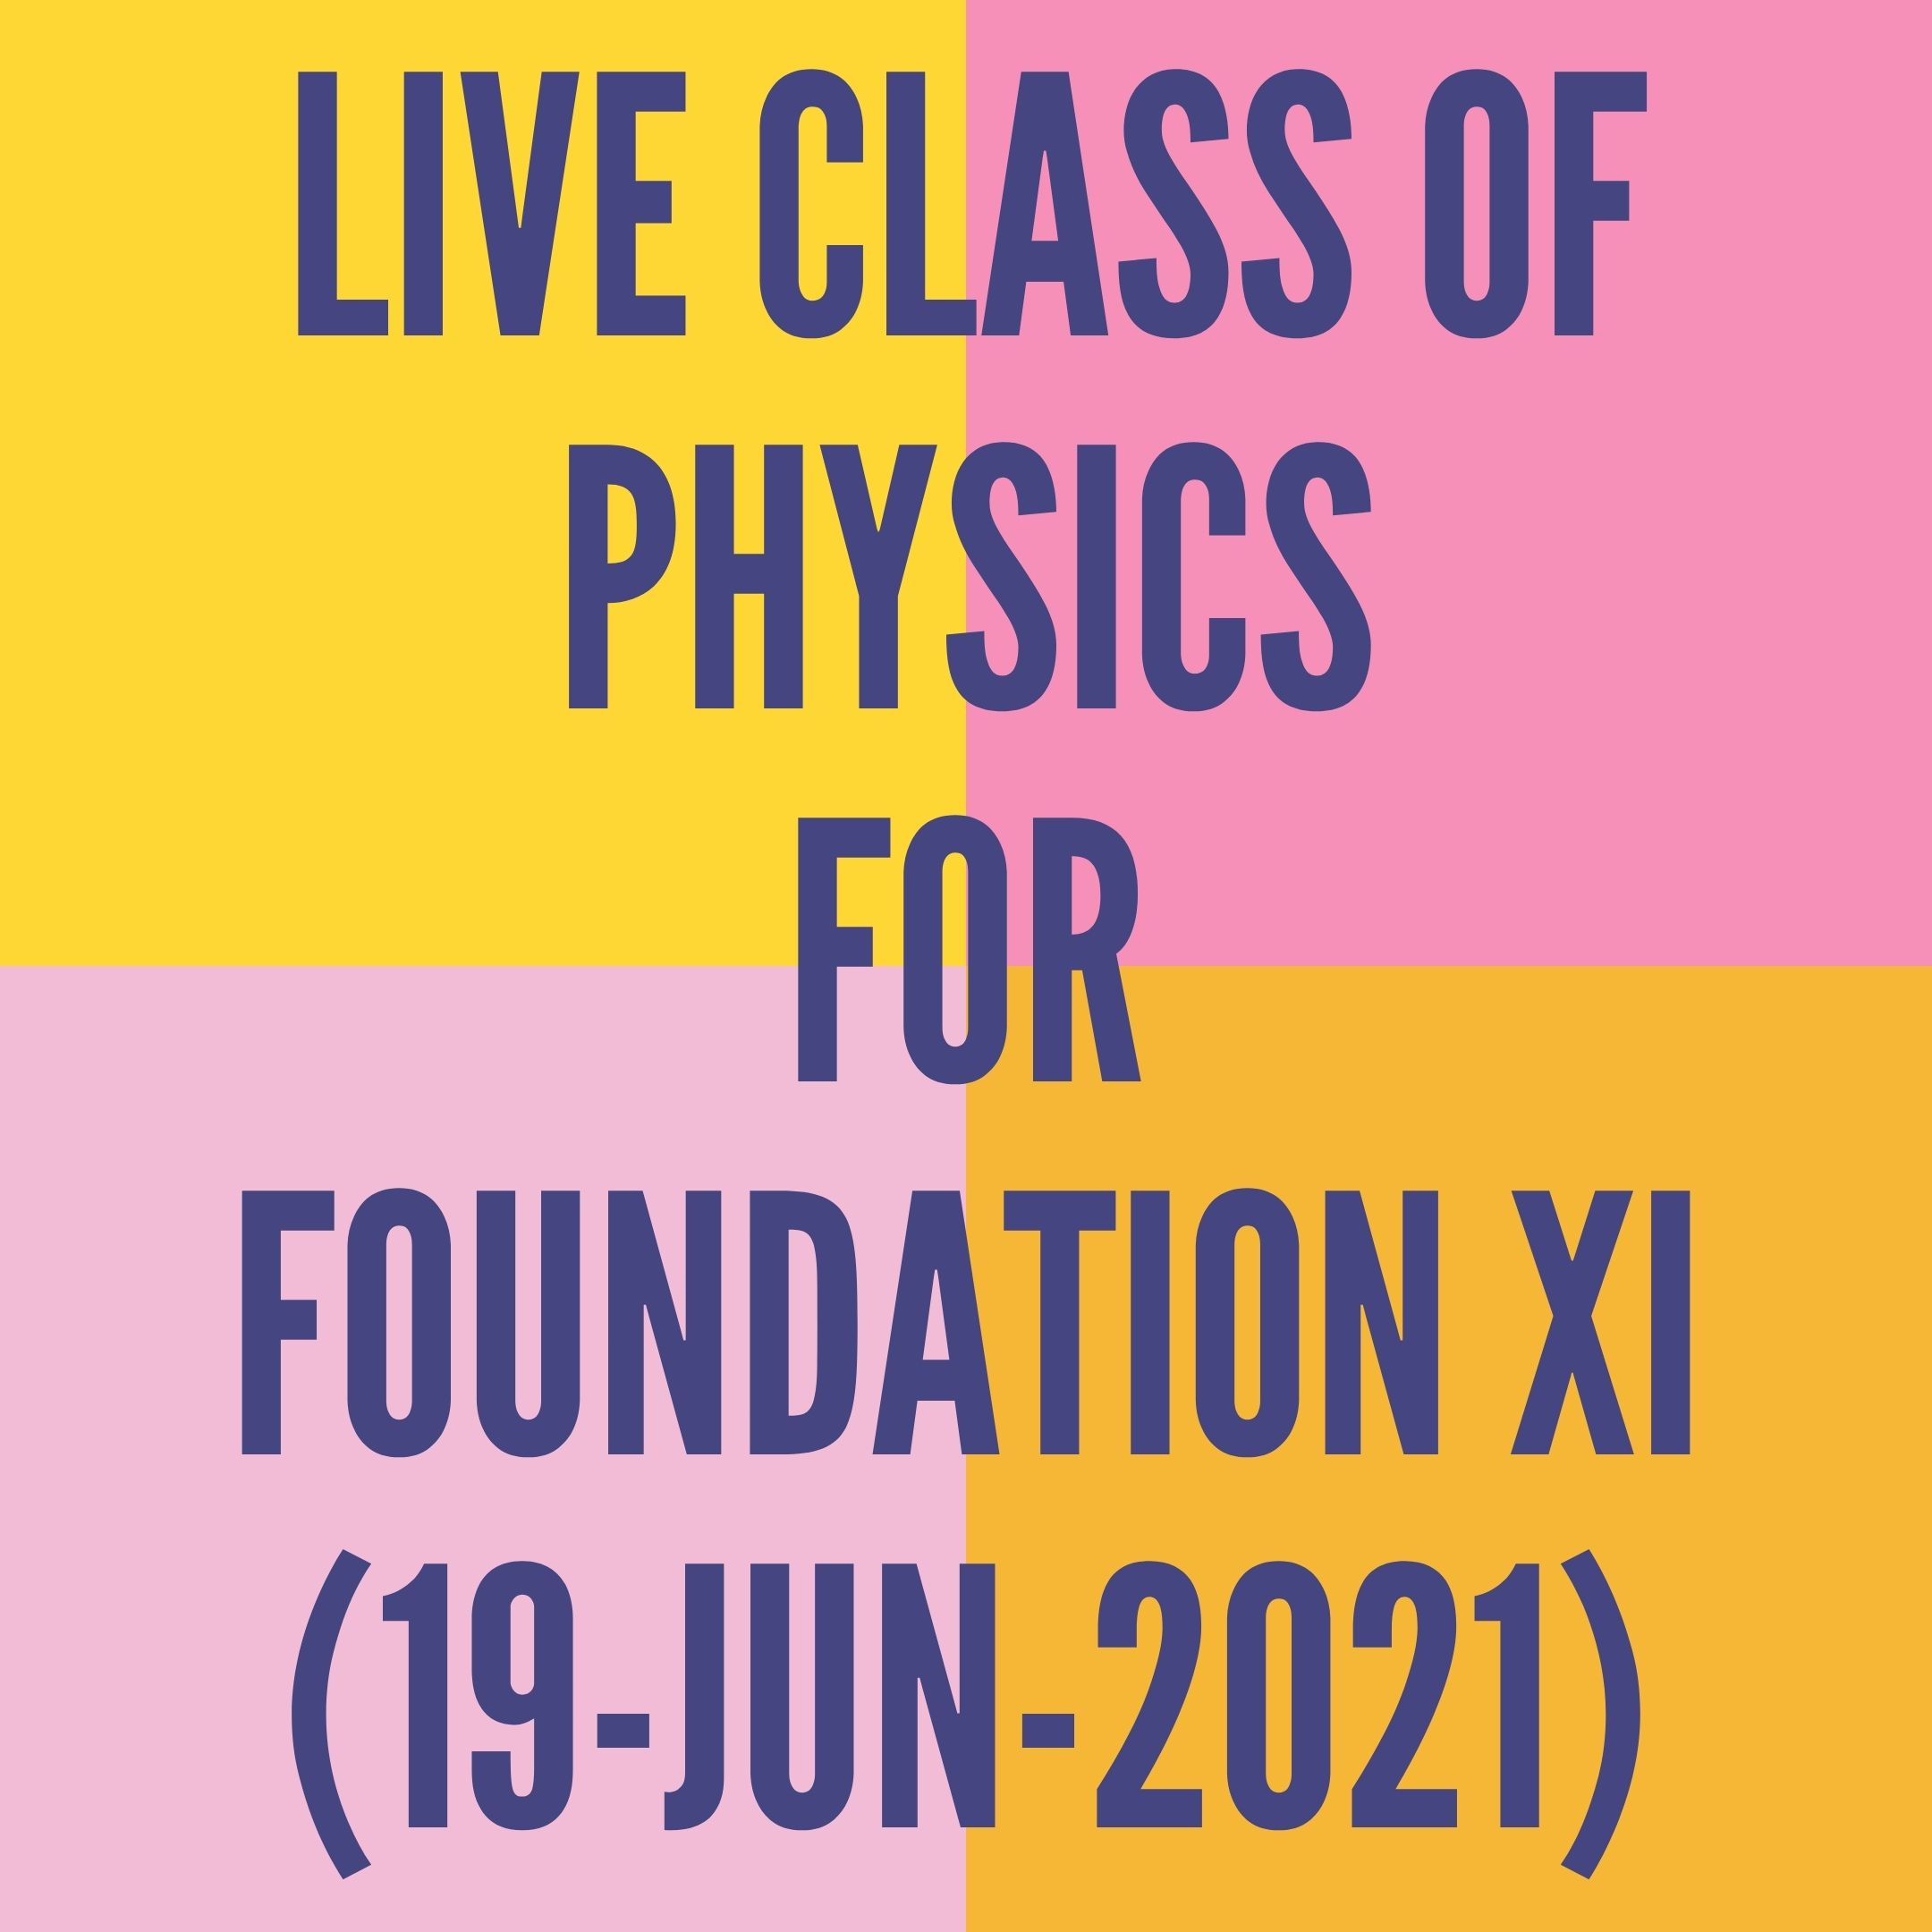 LIVE CLASS OF PHYSICS FOR FOUNDATION XI (19-JUN-2021) APPLIED MATHS